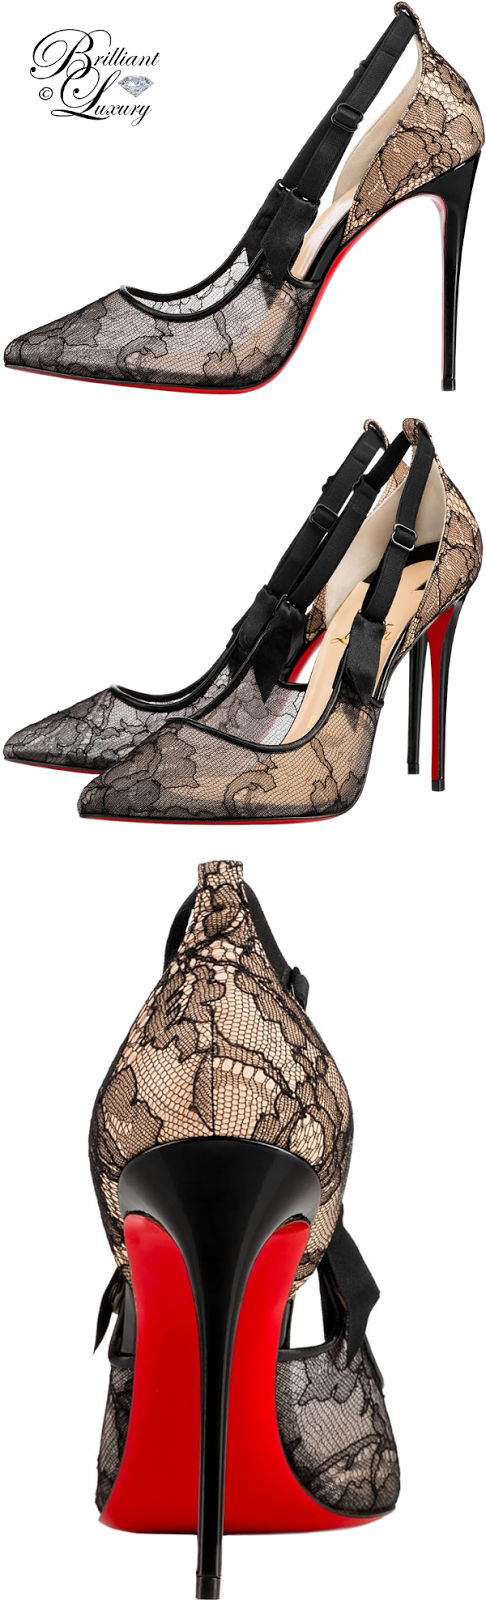 Brilliant Luxury ♦ Christian Louboutin Hot Jeanbi Chantilly Pumps